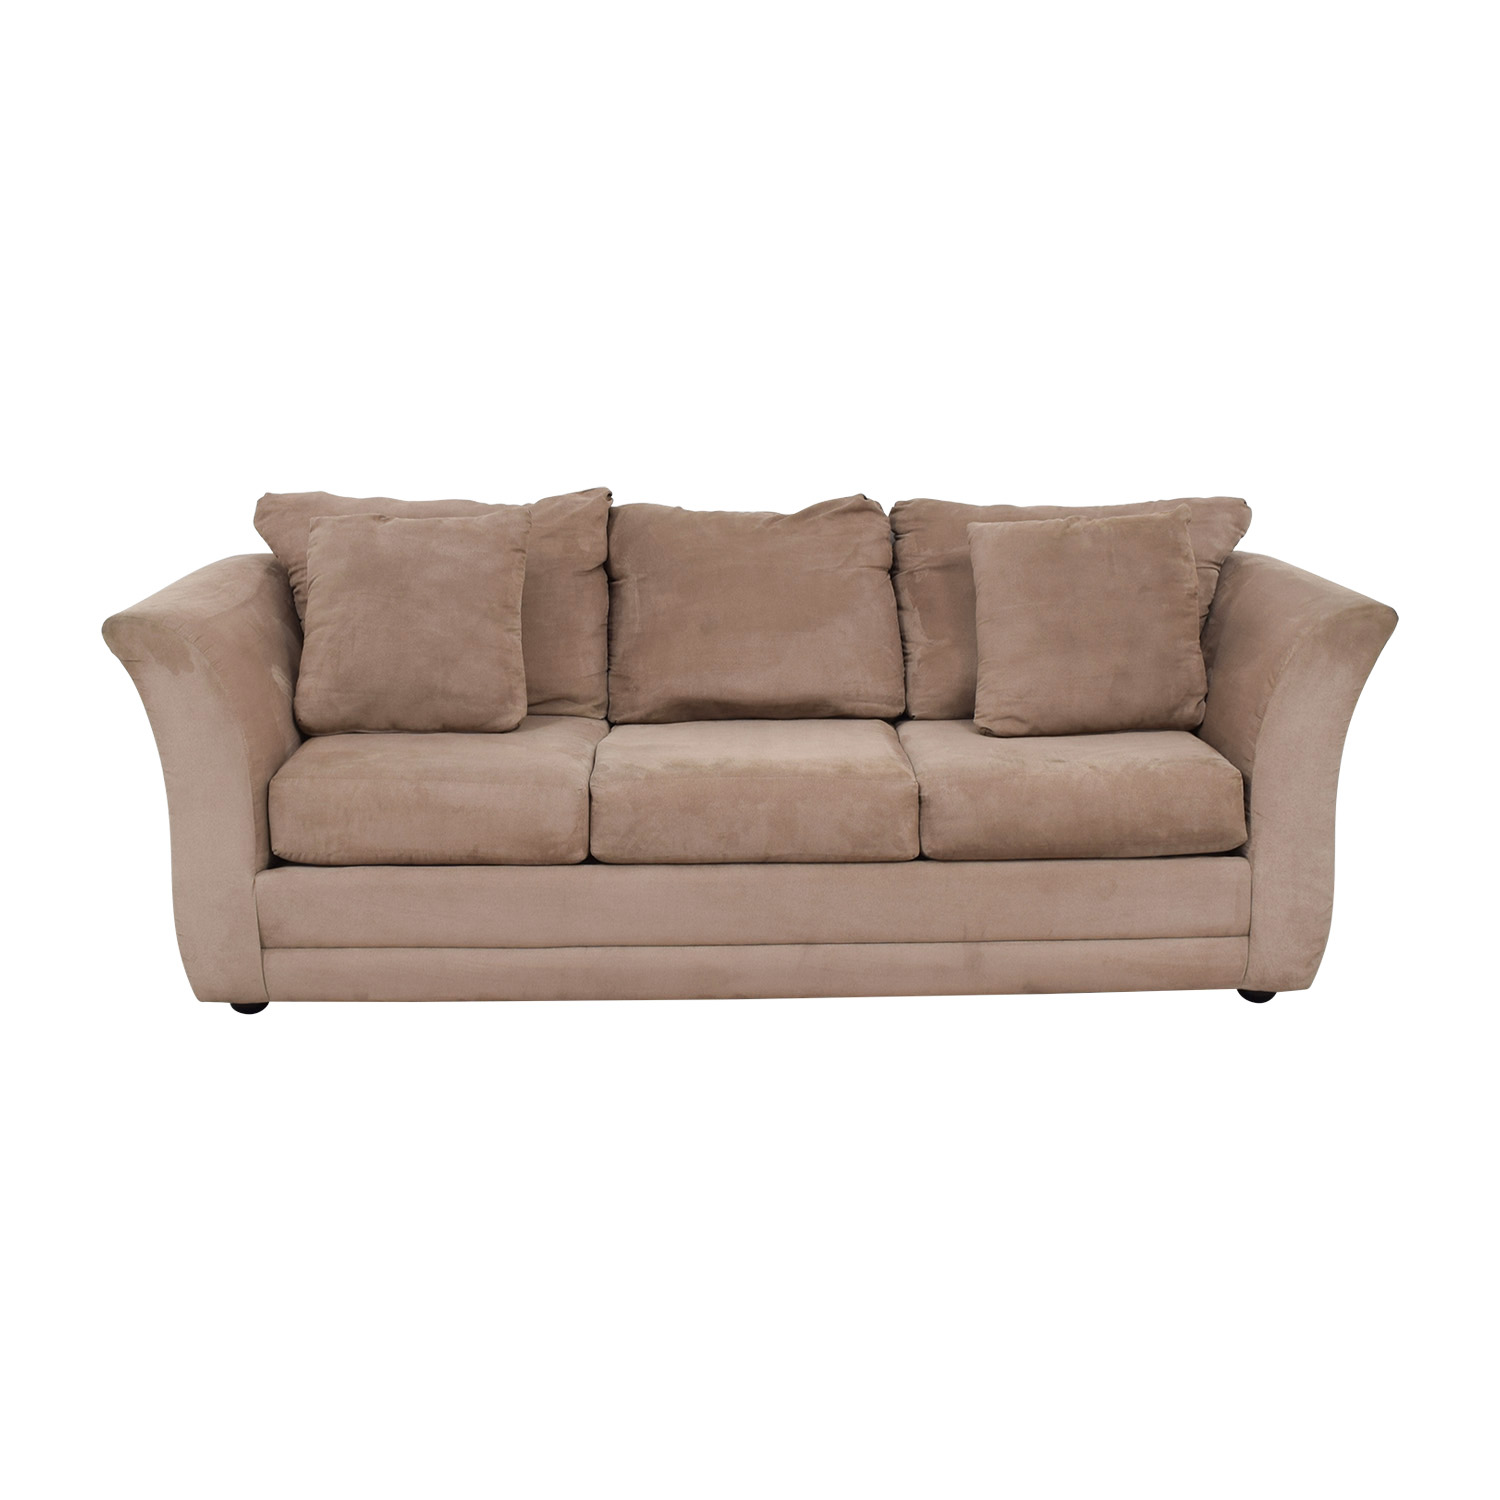 Jennifer Furniture Jennifer Furniture Beige Three-Cushion Sofa second hand